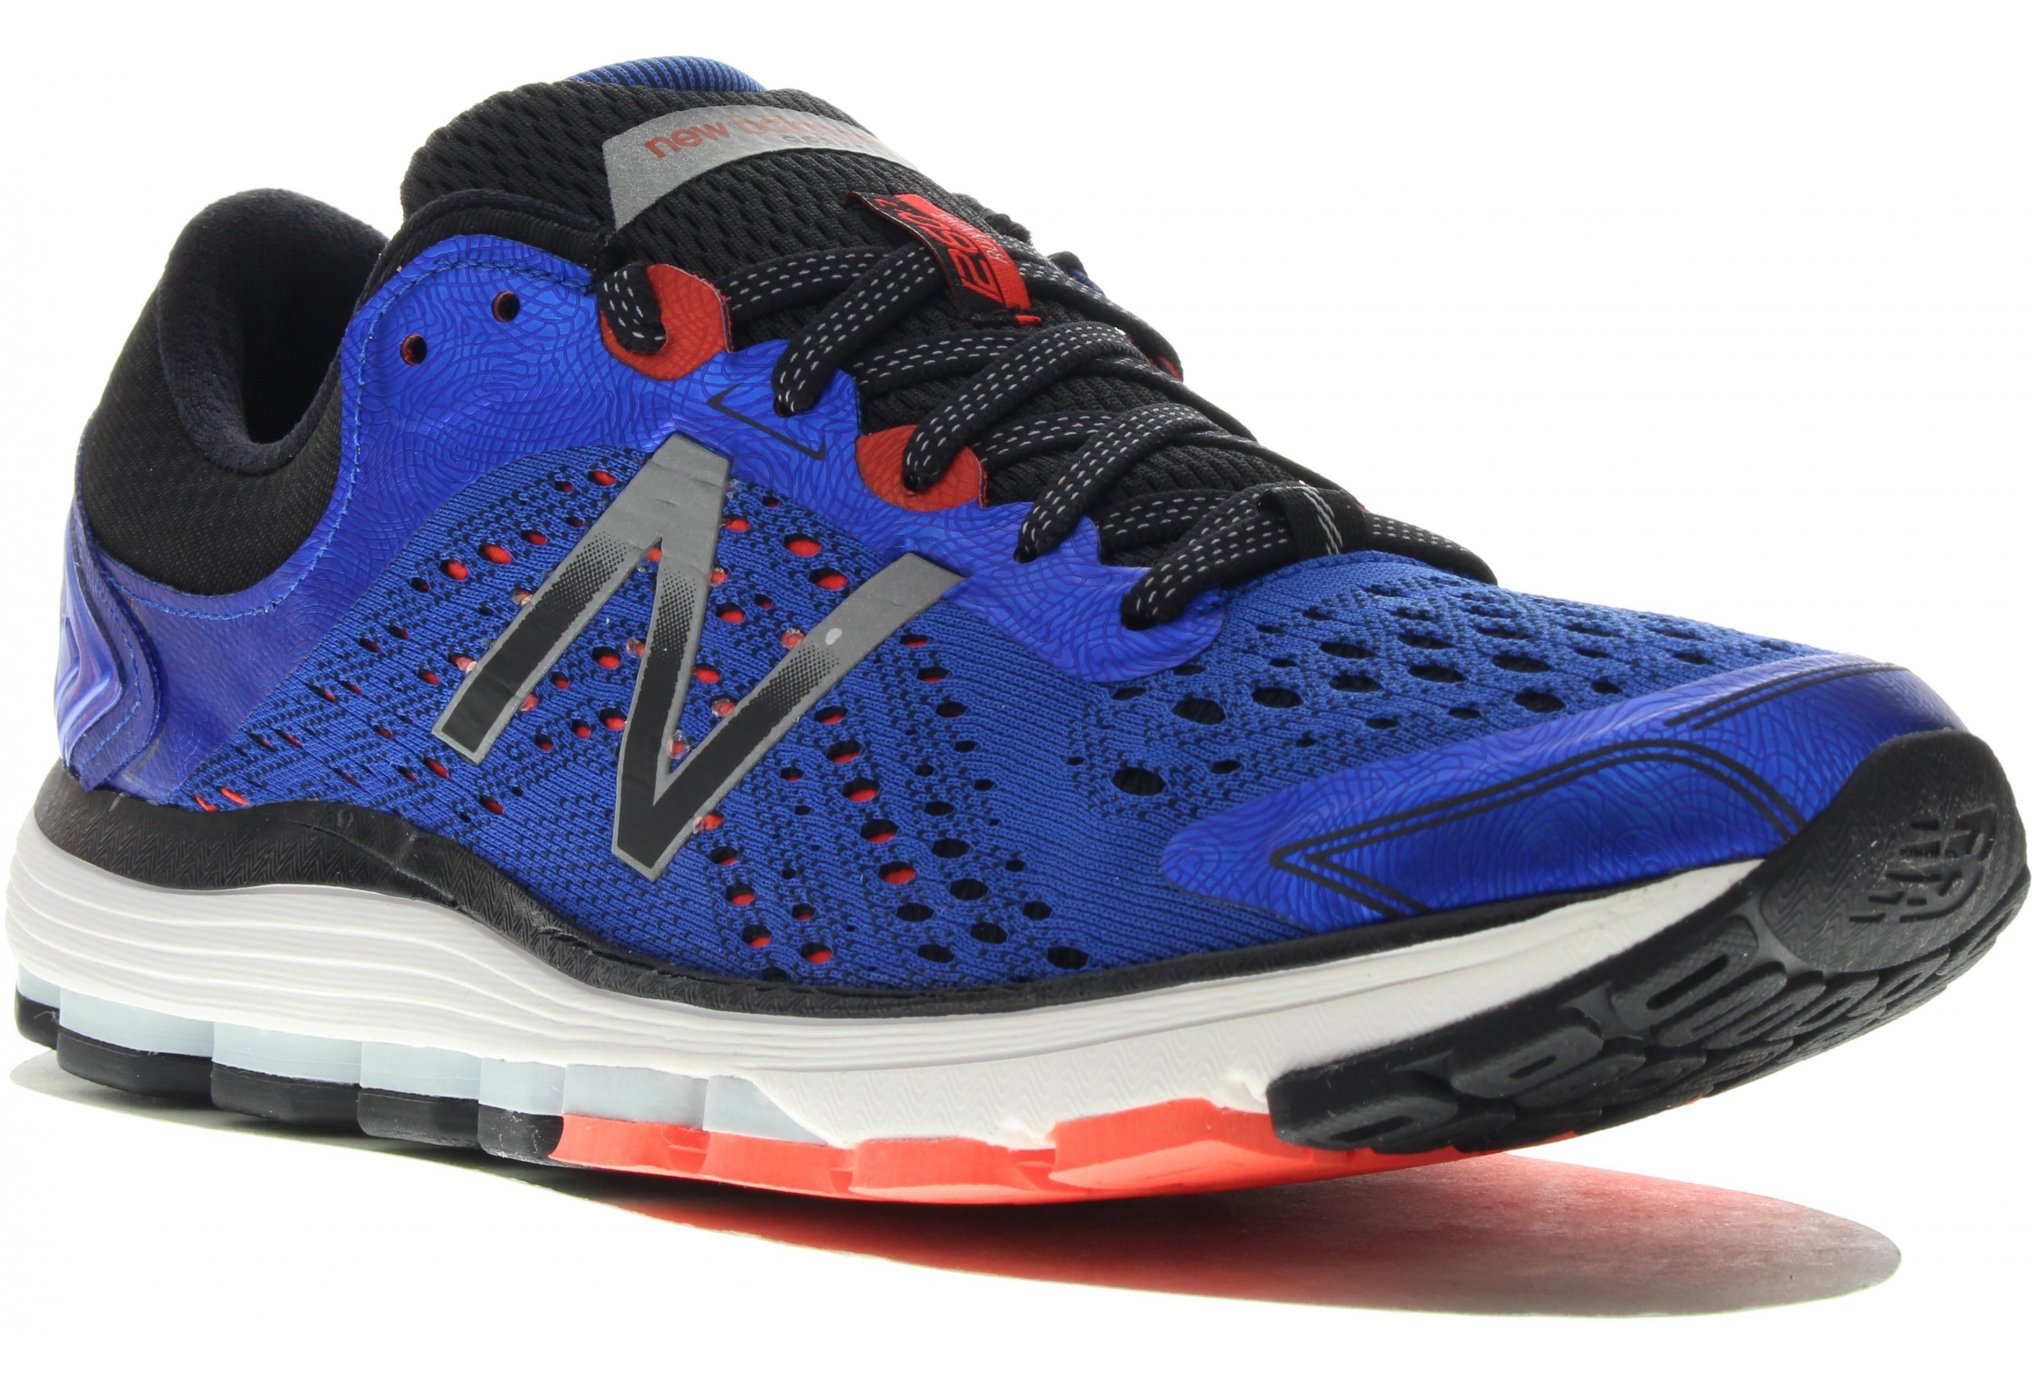 New Balance M 1260 v7 - D Chaussures homme